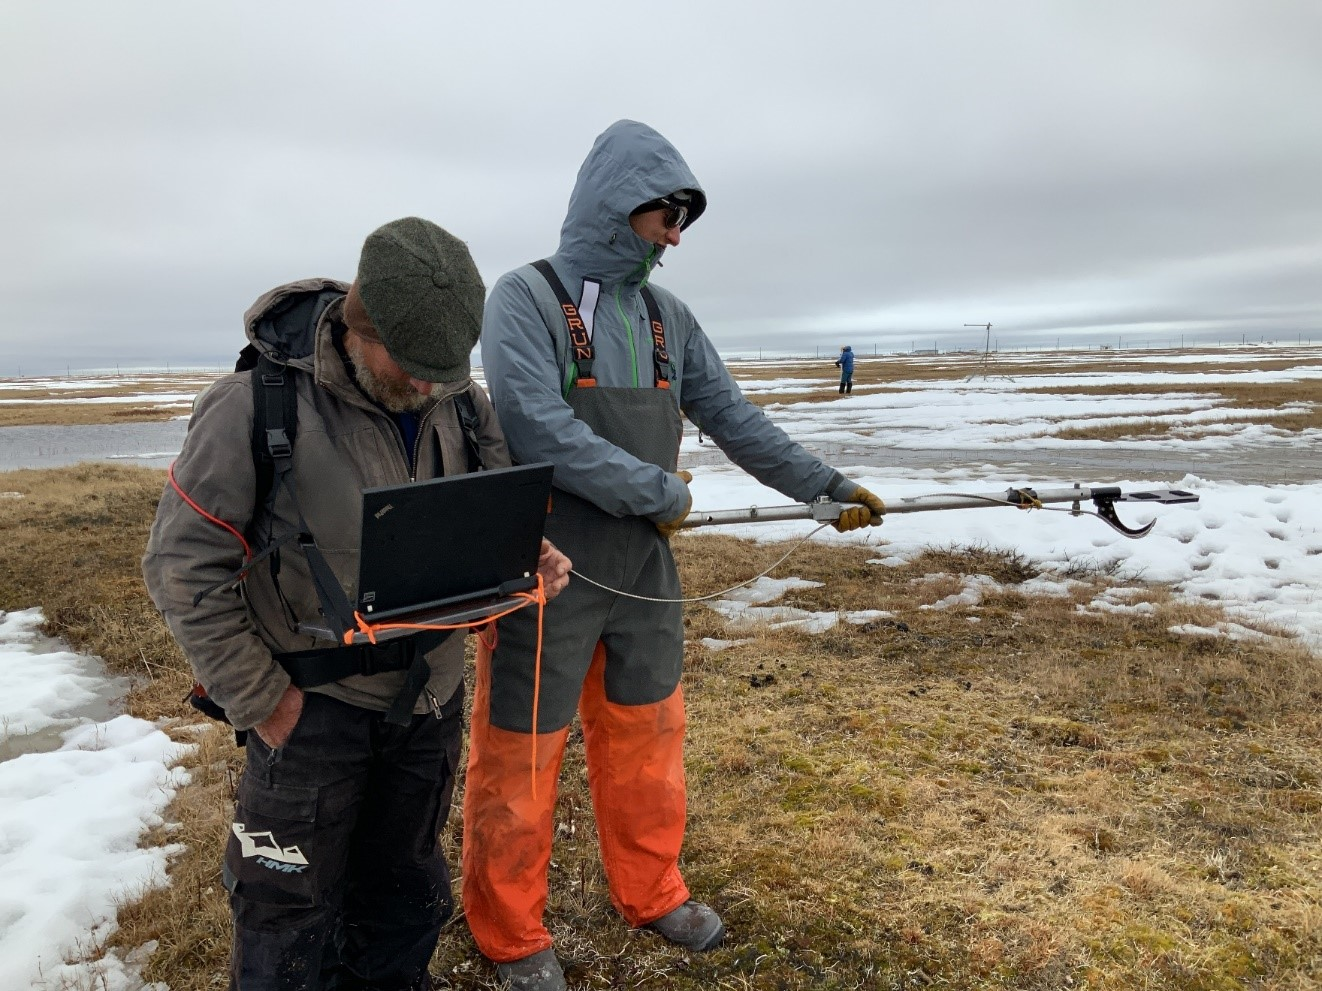 Sturm, left, studies a computer readout during SALVO work in the spring of 2019. Dark patches of tundra emerge to soak up more heat, decreasing the albedo of the landscape.